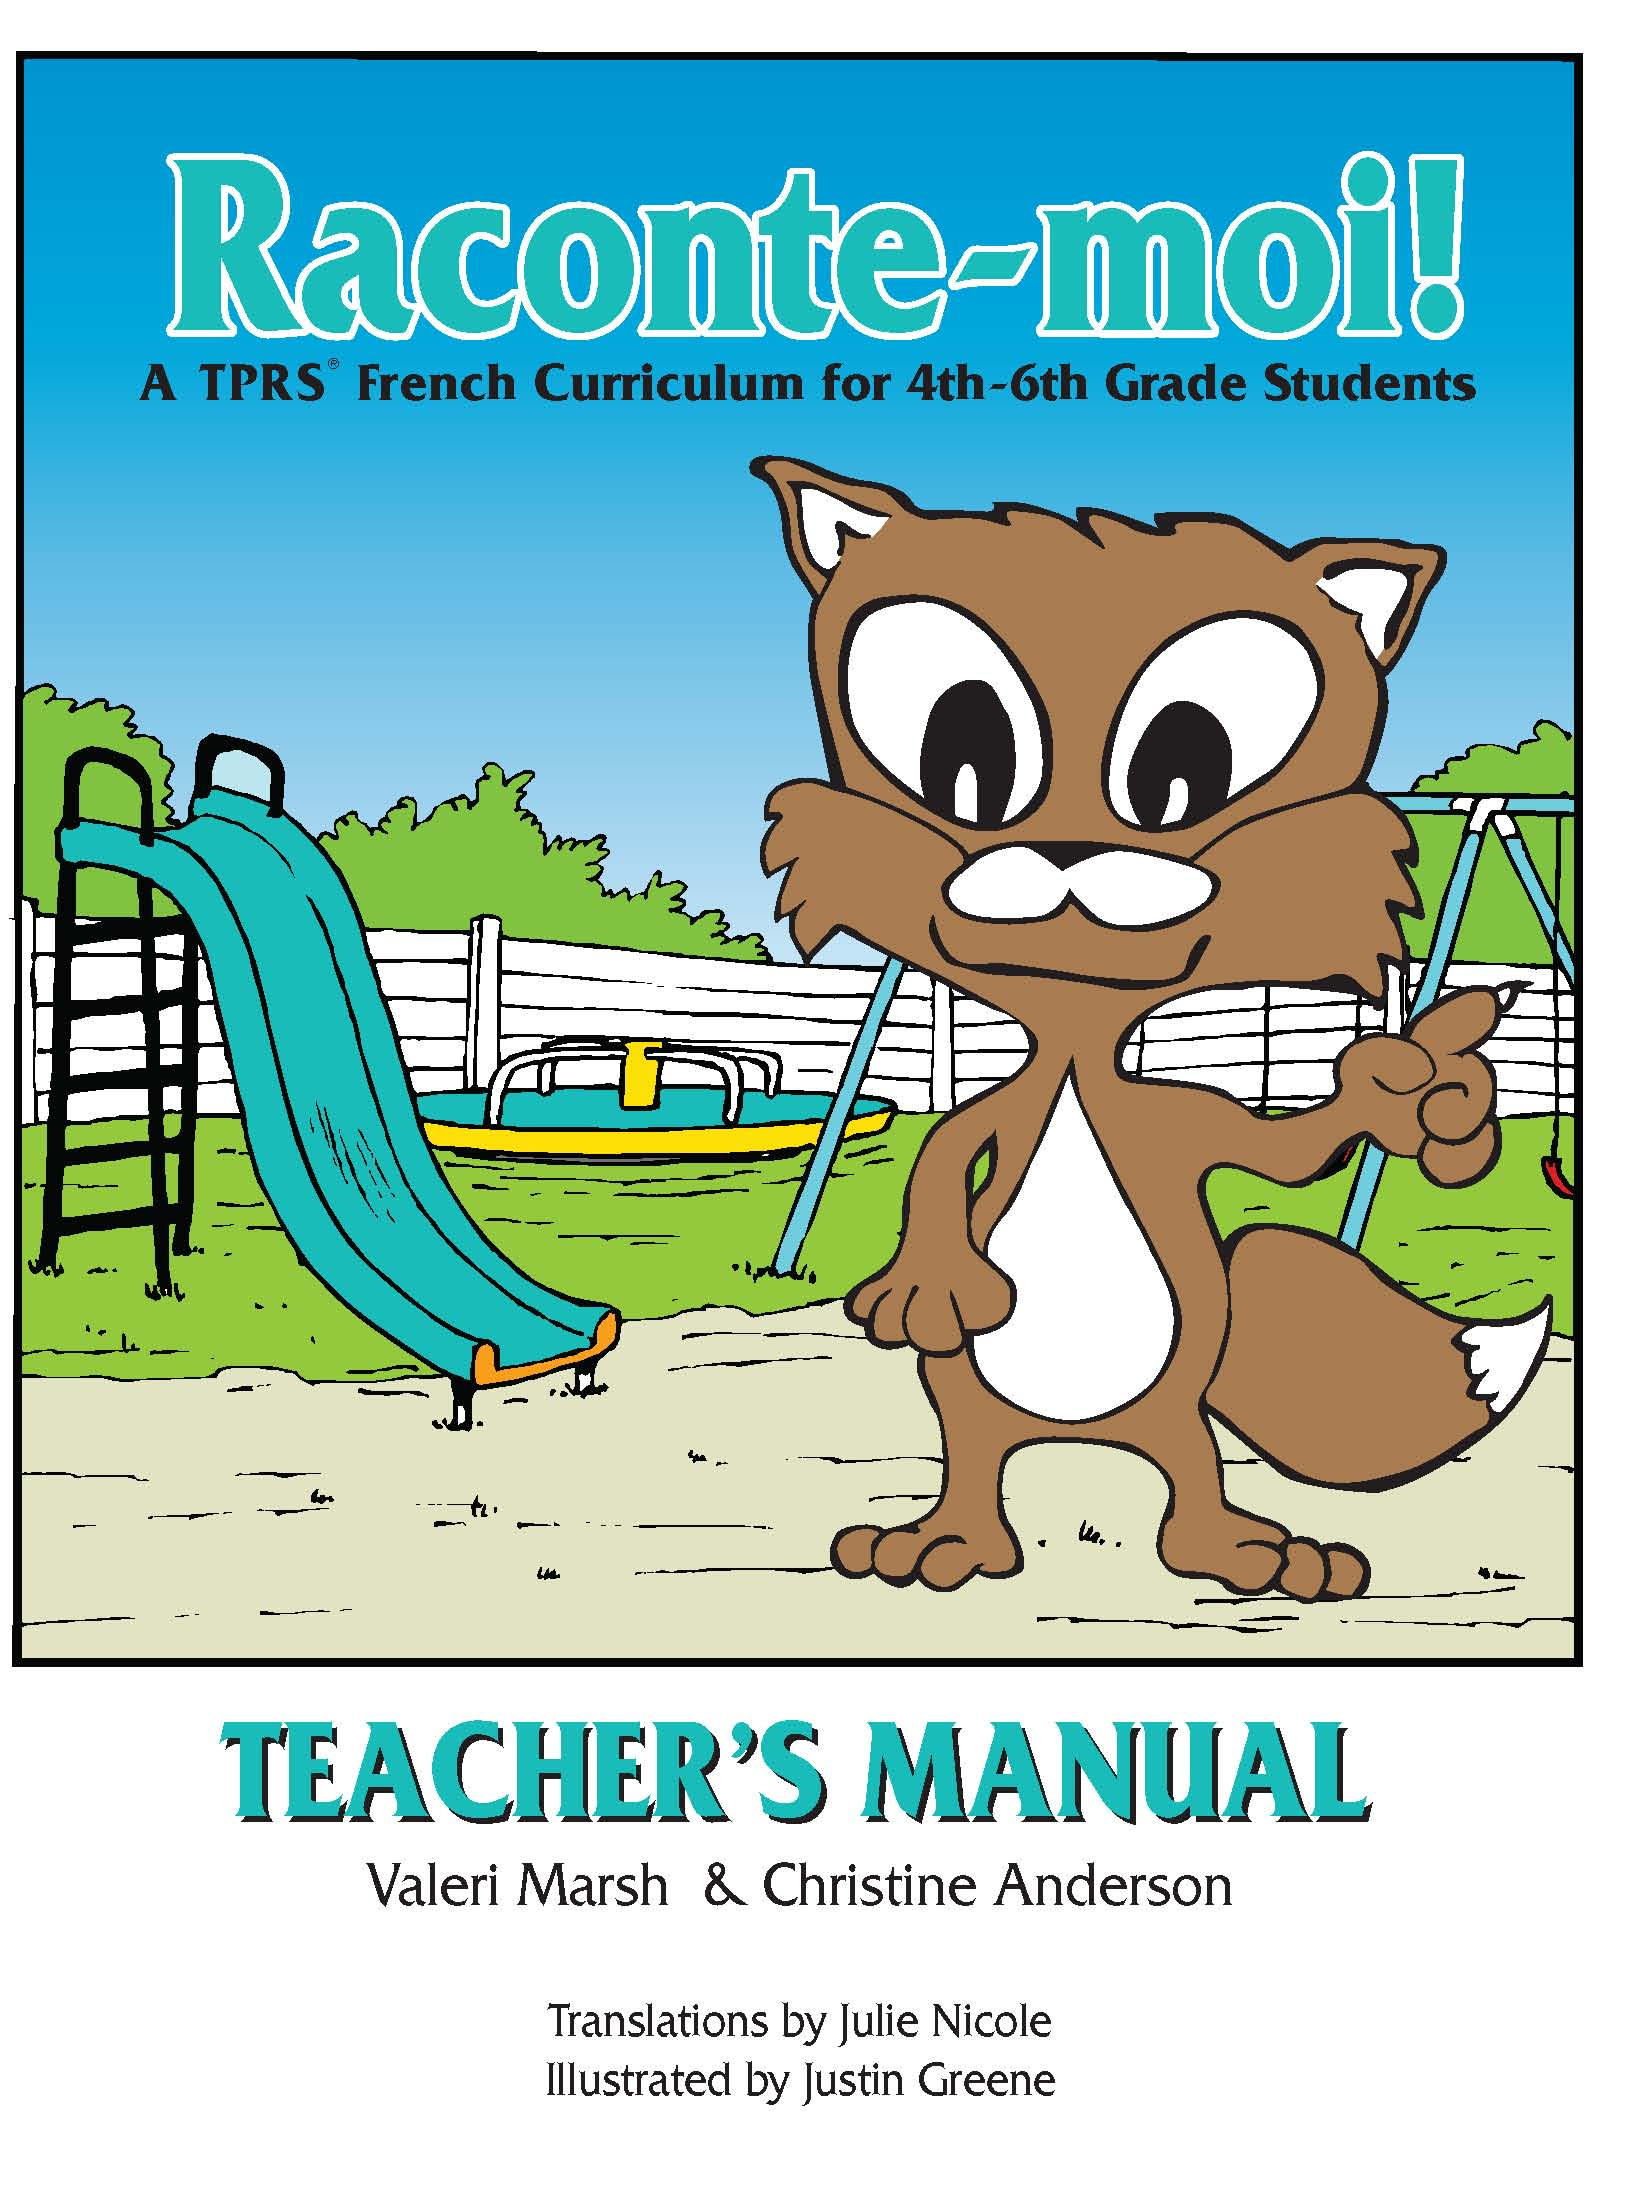 Raconte-moi! Teacher's Manual